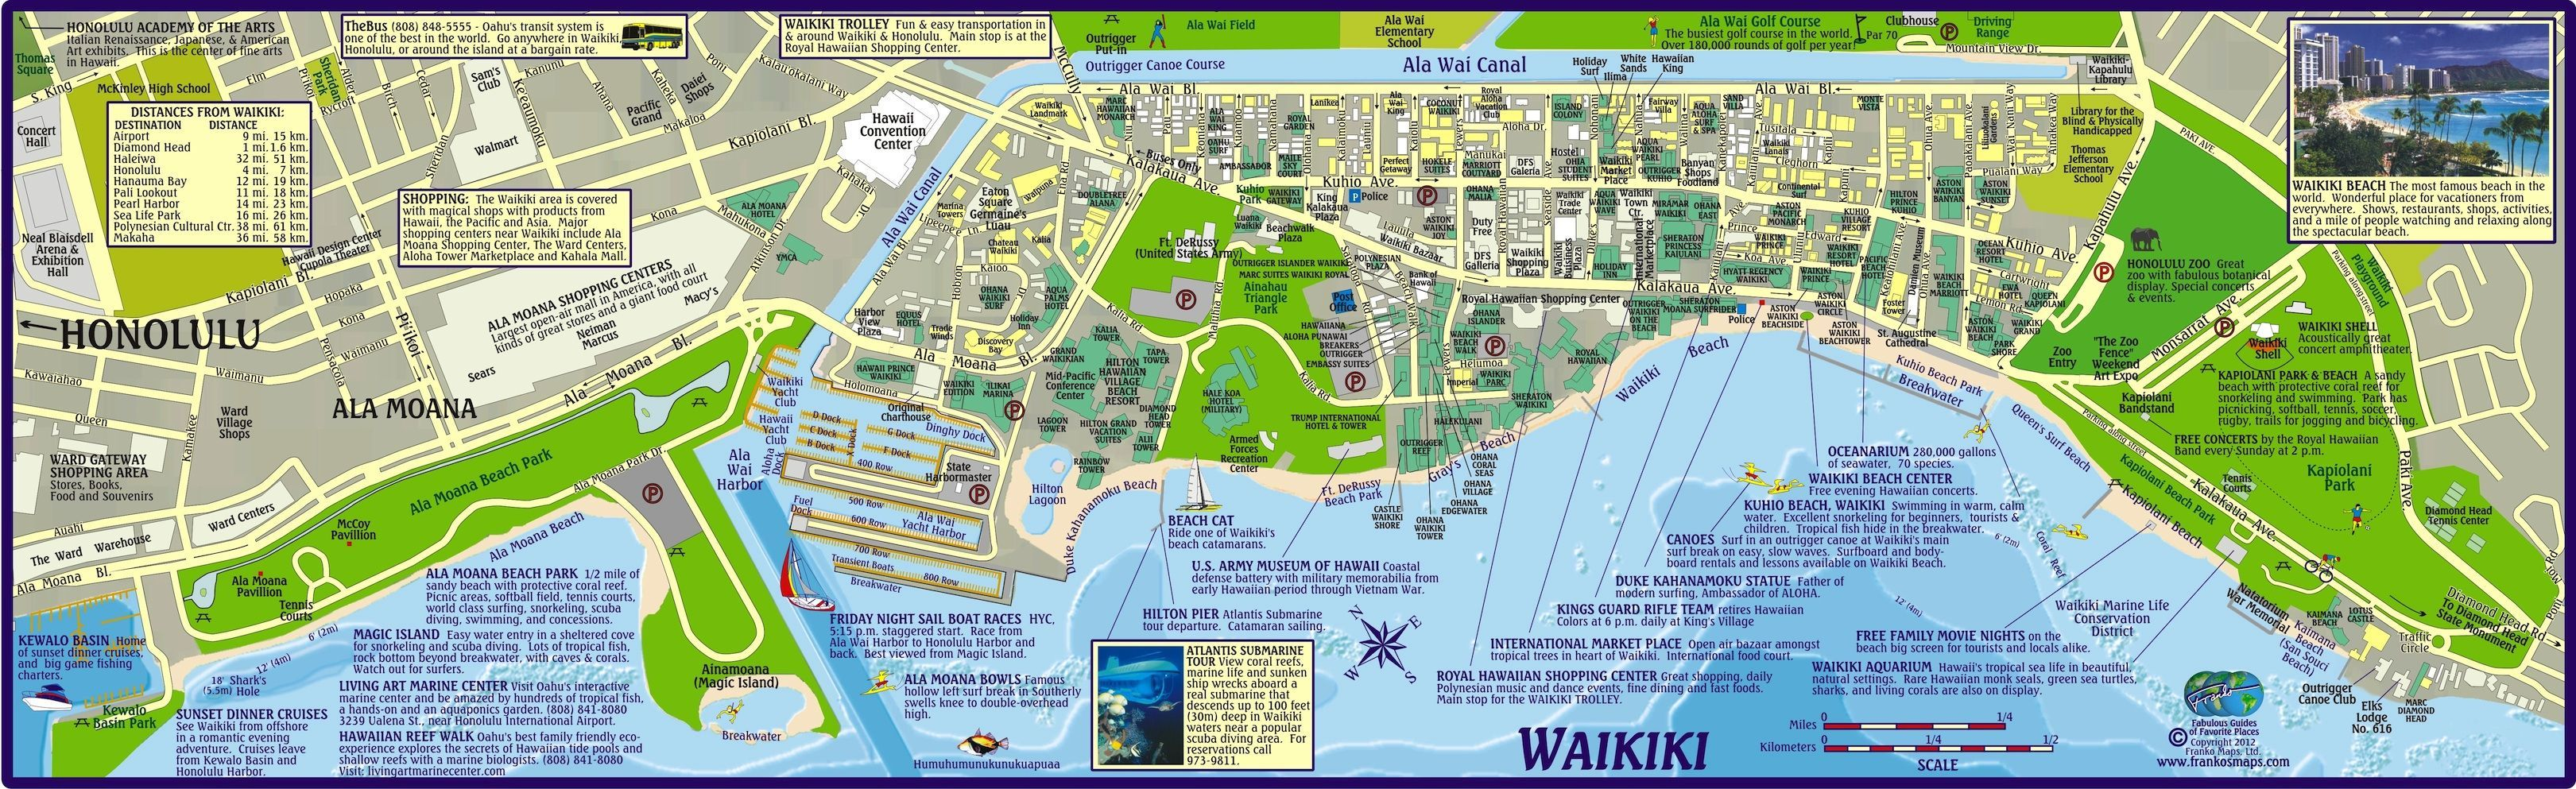 Waikiki Beach Map Hotels Hawaii Pinterest